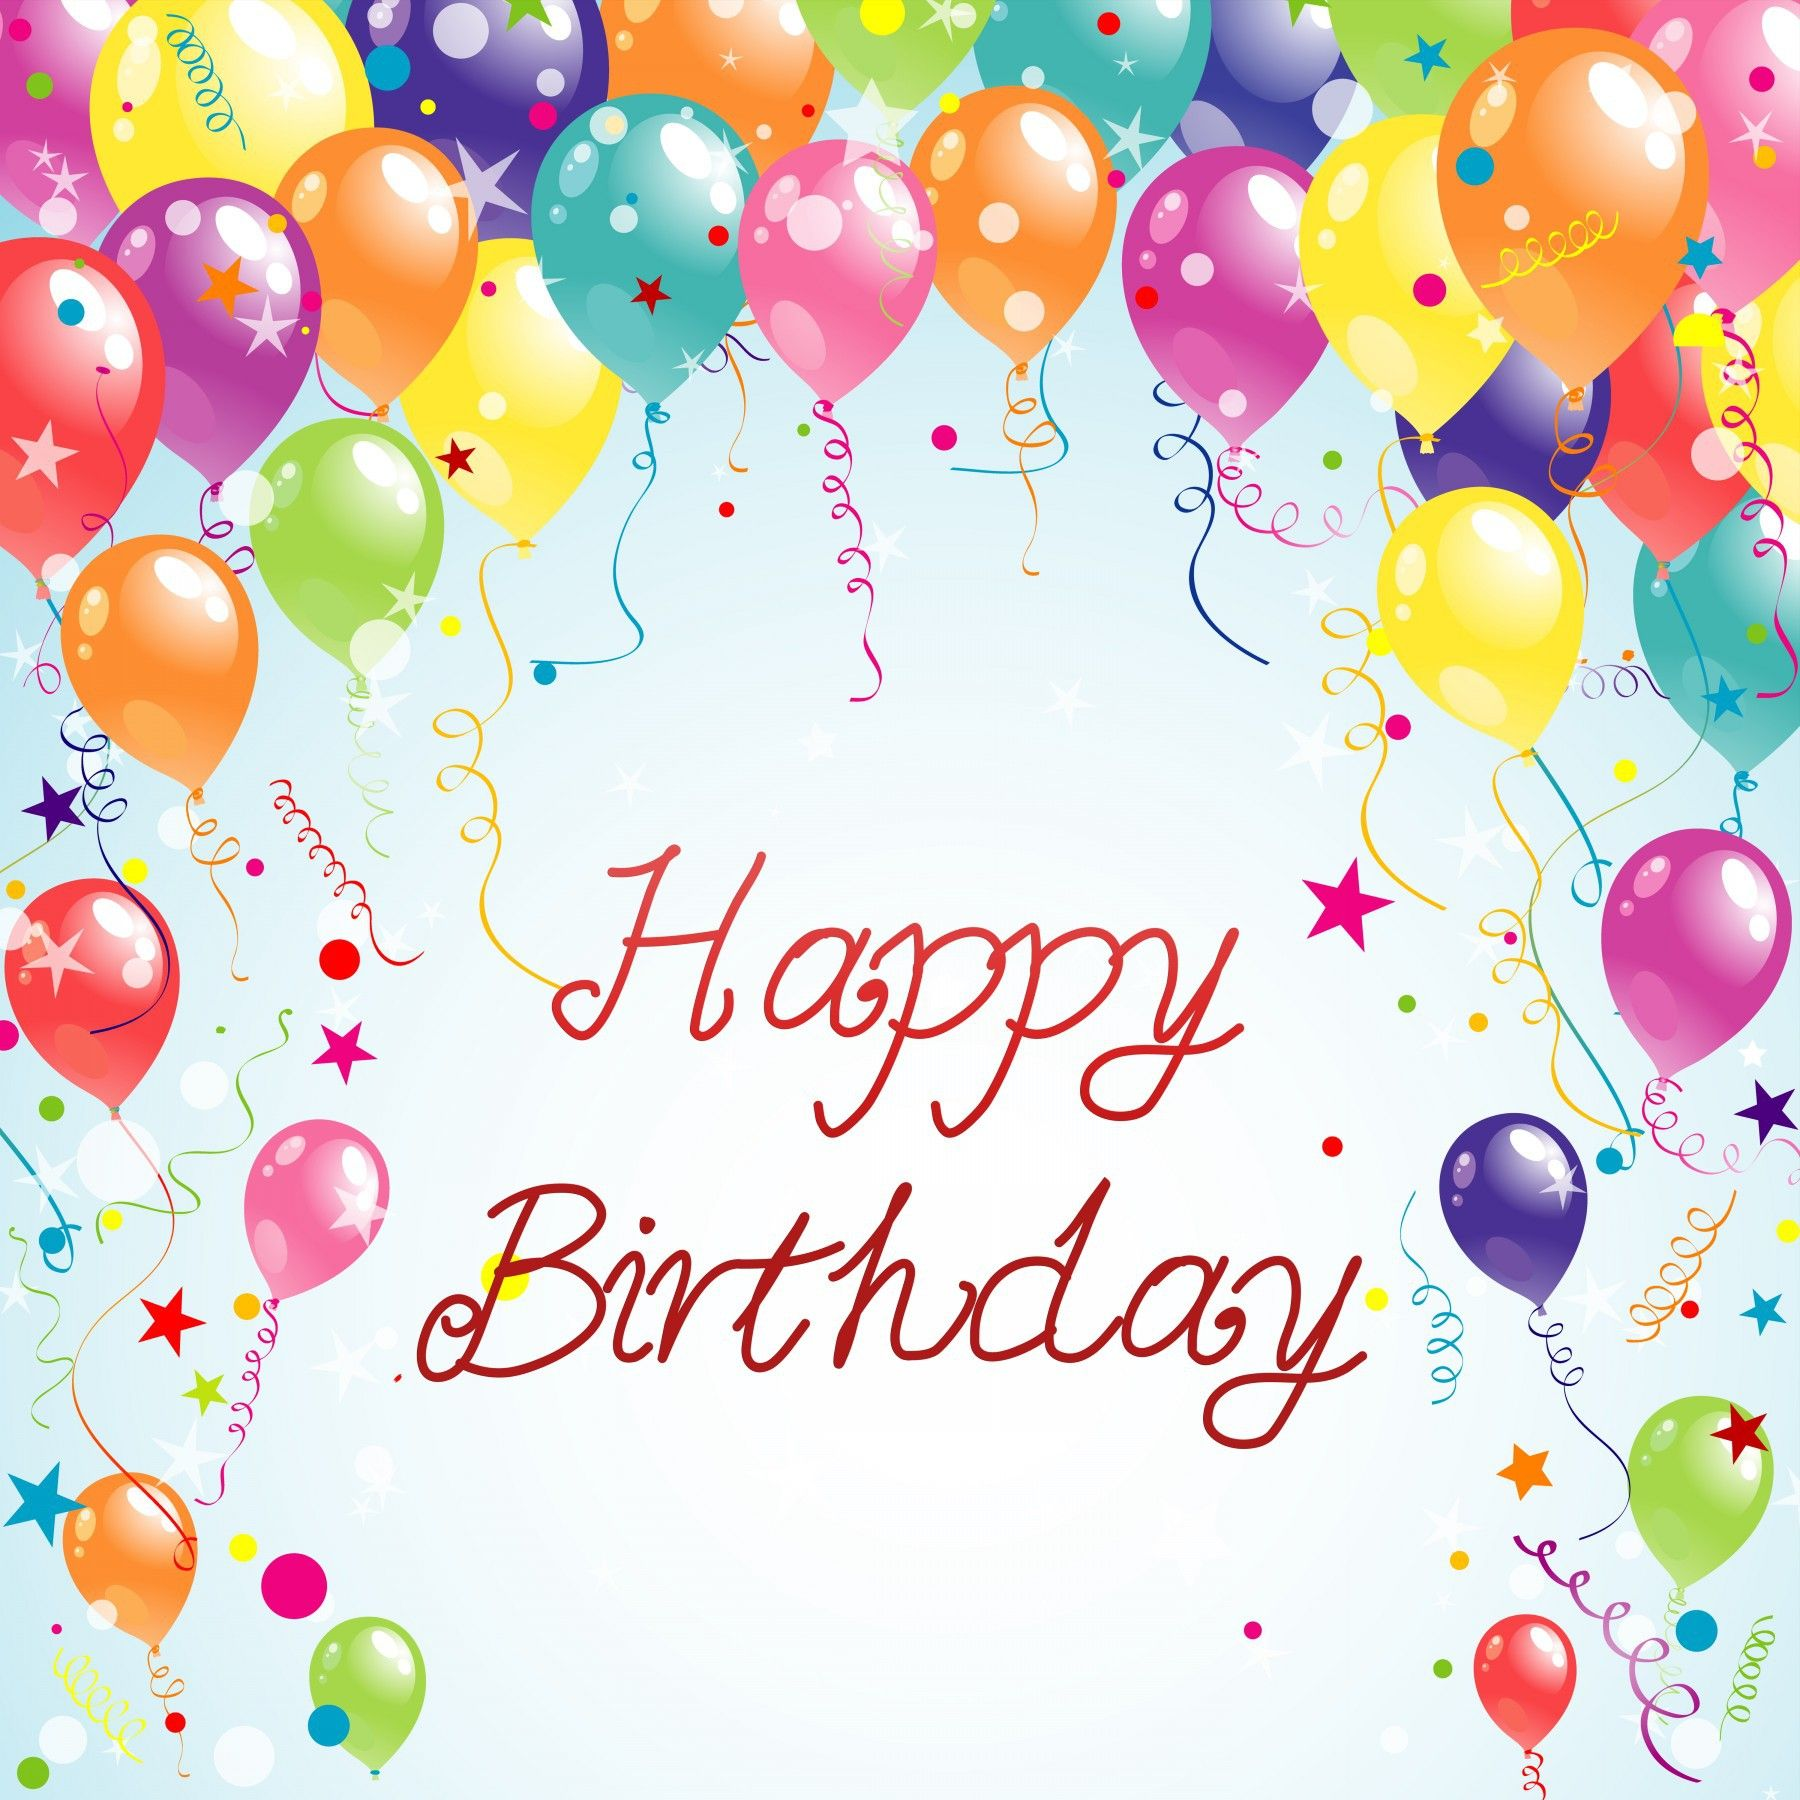 Happy Birthday Wallpaper HD Wallpapers Backgrounds Images Art | Birthday greetings | Happy ...